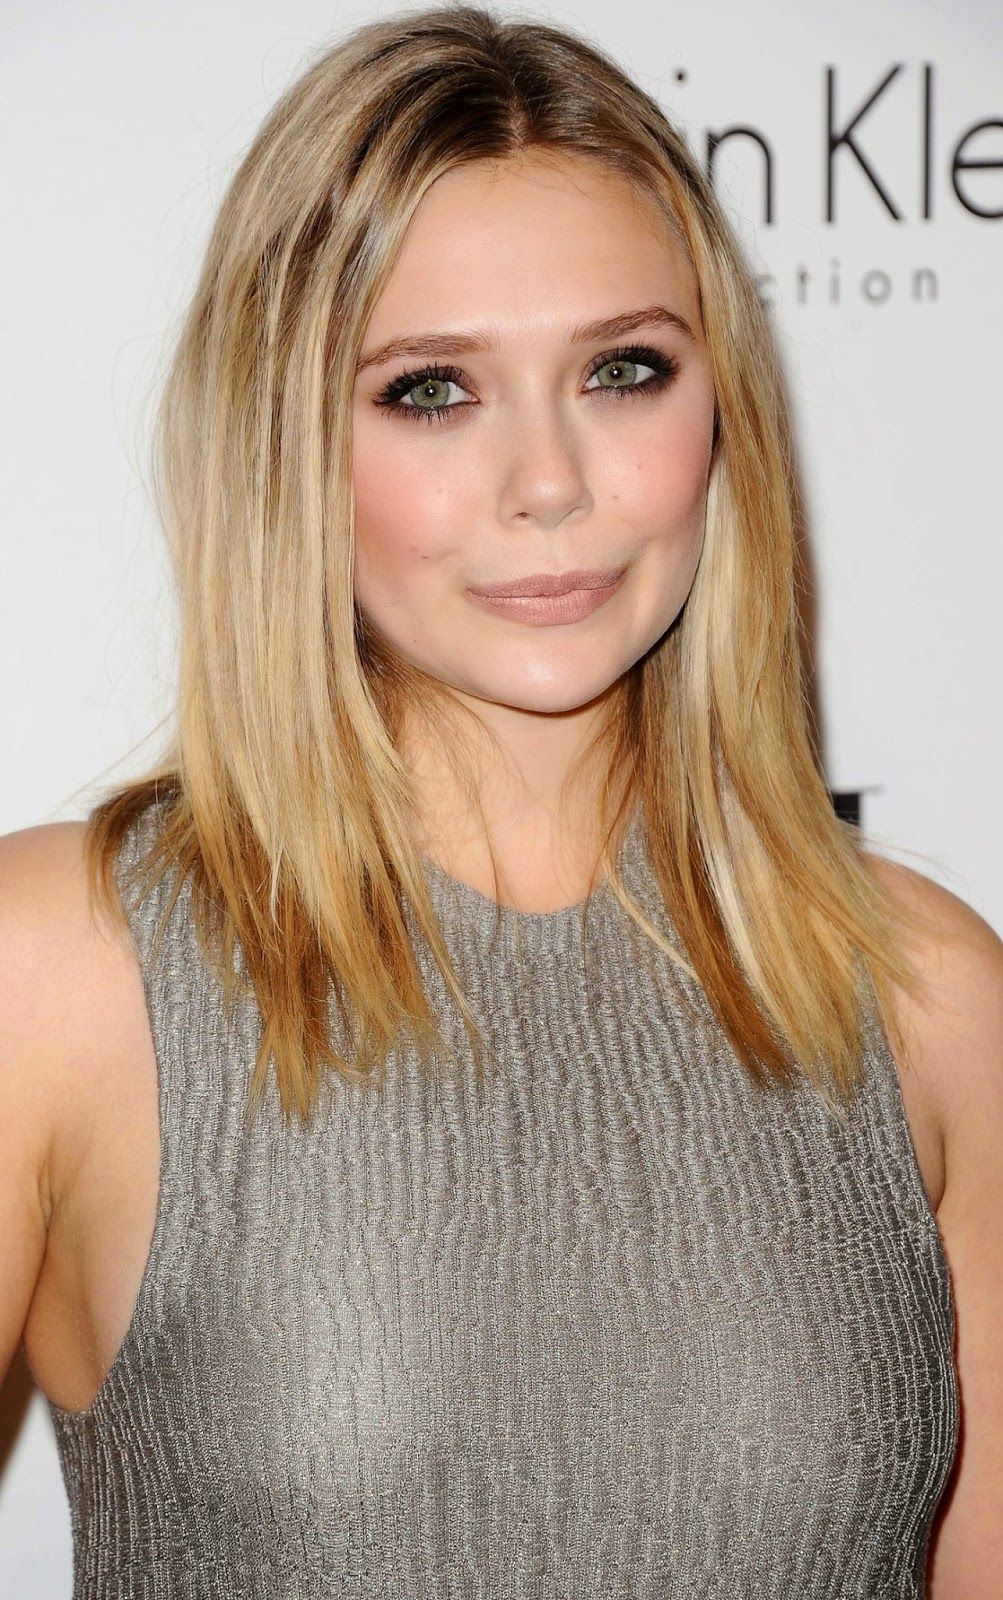 Elizabeth Olsen born February 16, 1989 (age 29) nudes (25 foto and video), Sexy, Cleavage, Twitter, cleavage 2019